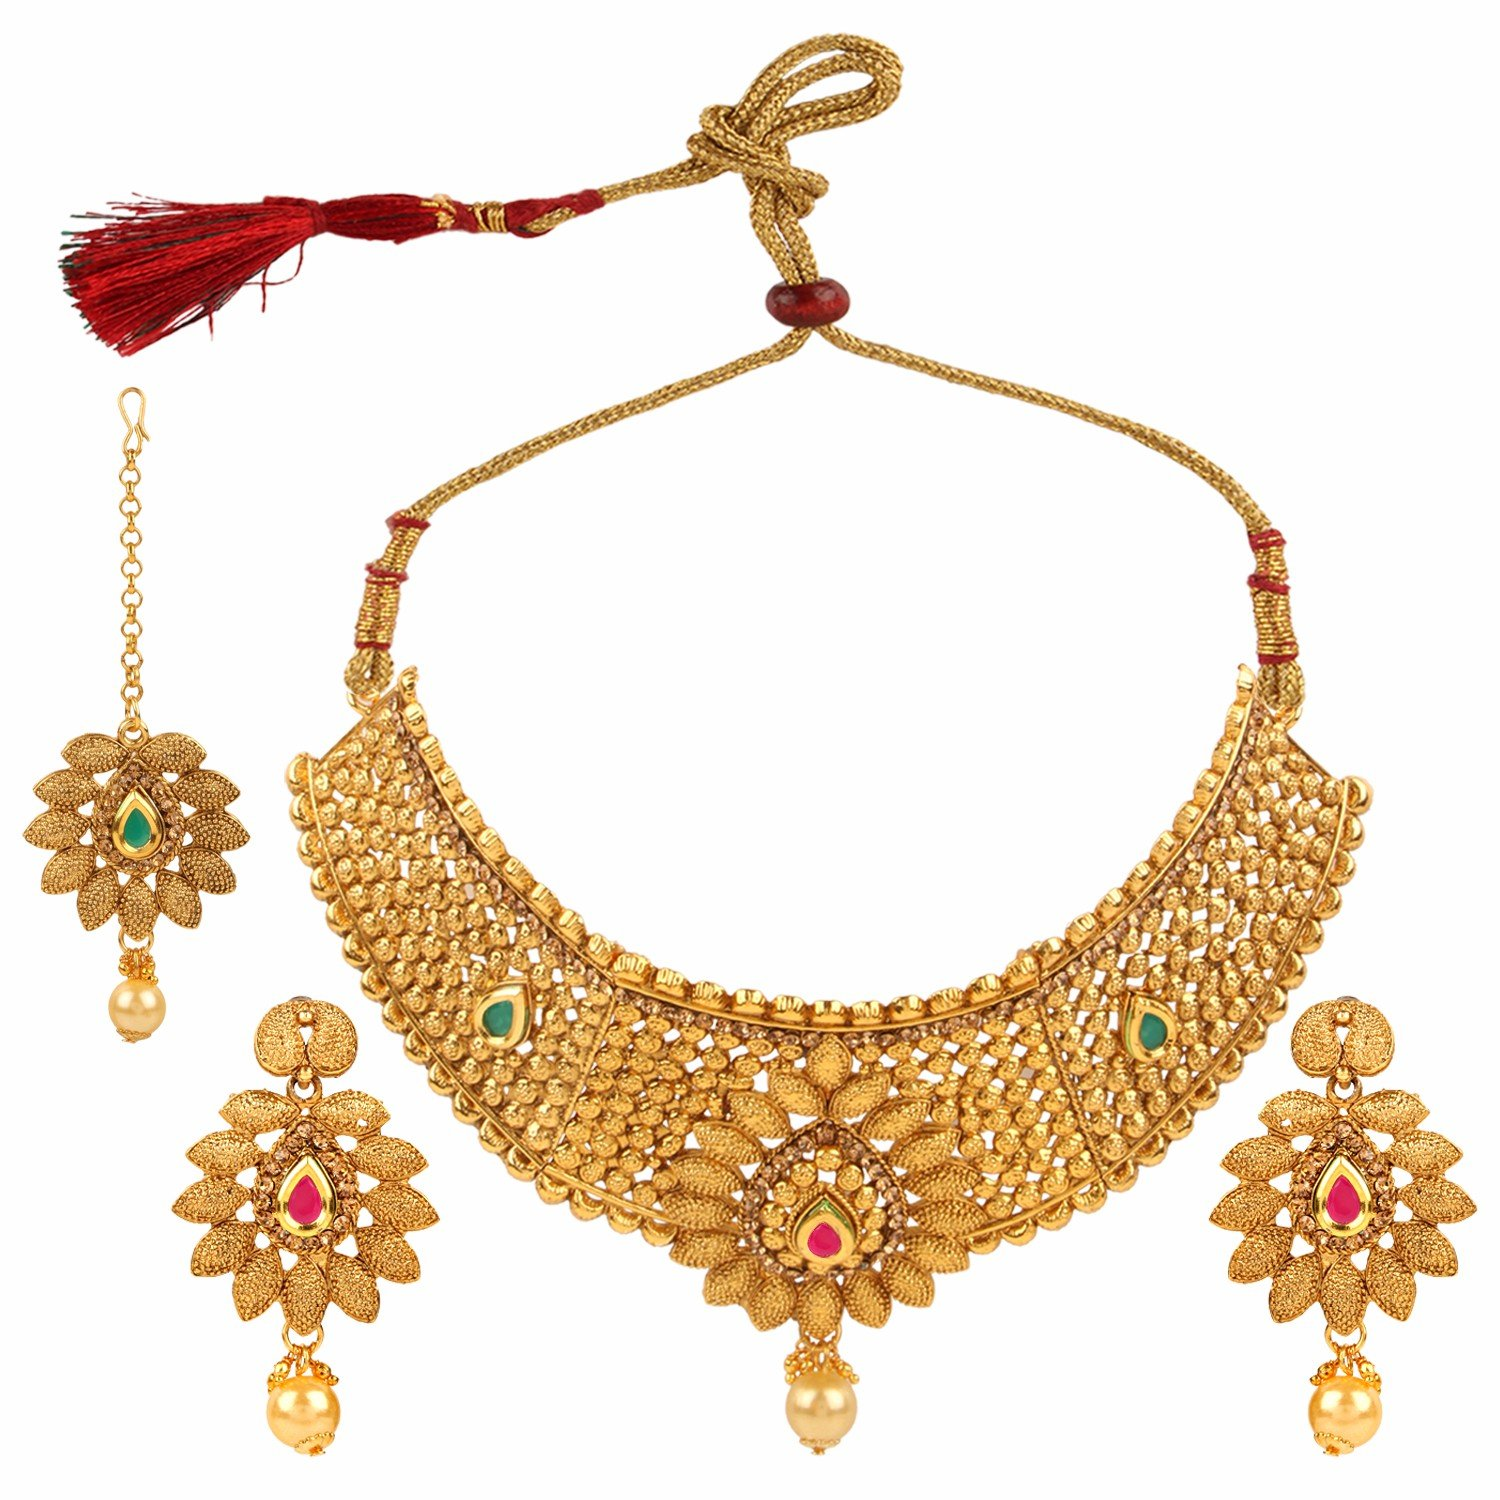 Efulgenz Indian Bollywood Traditional Emerald Heavy Bridal Designer Jewelry Choker Necklace Set in Antique 18K Gold Tone for Women and Girls Jaipur Art Jewellery MNT128